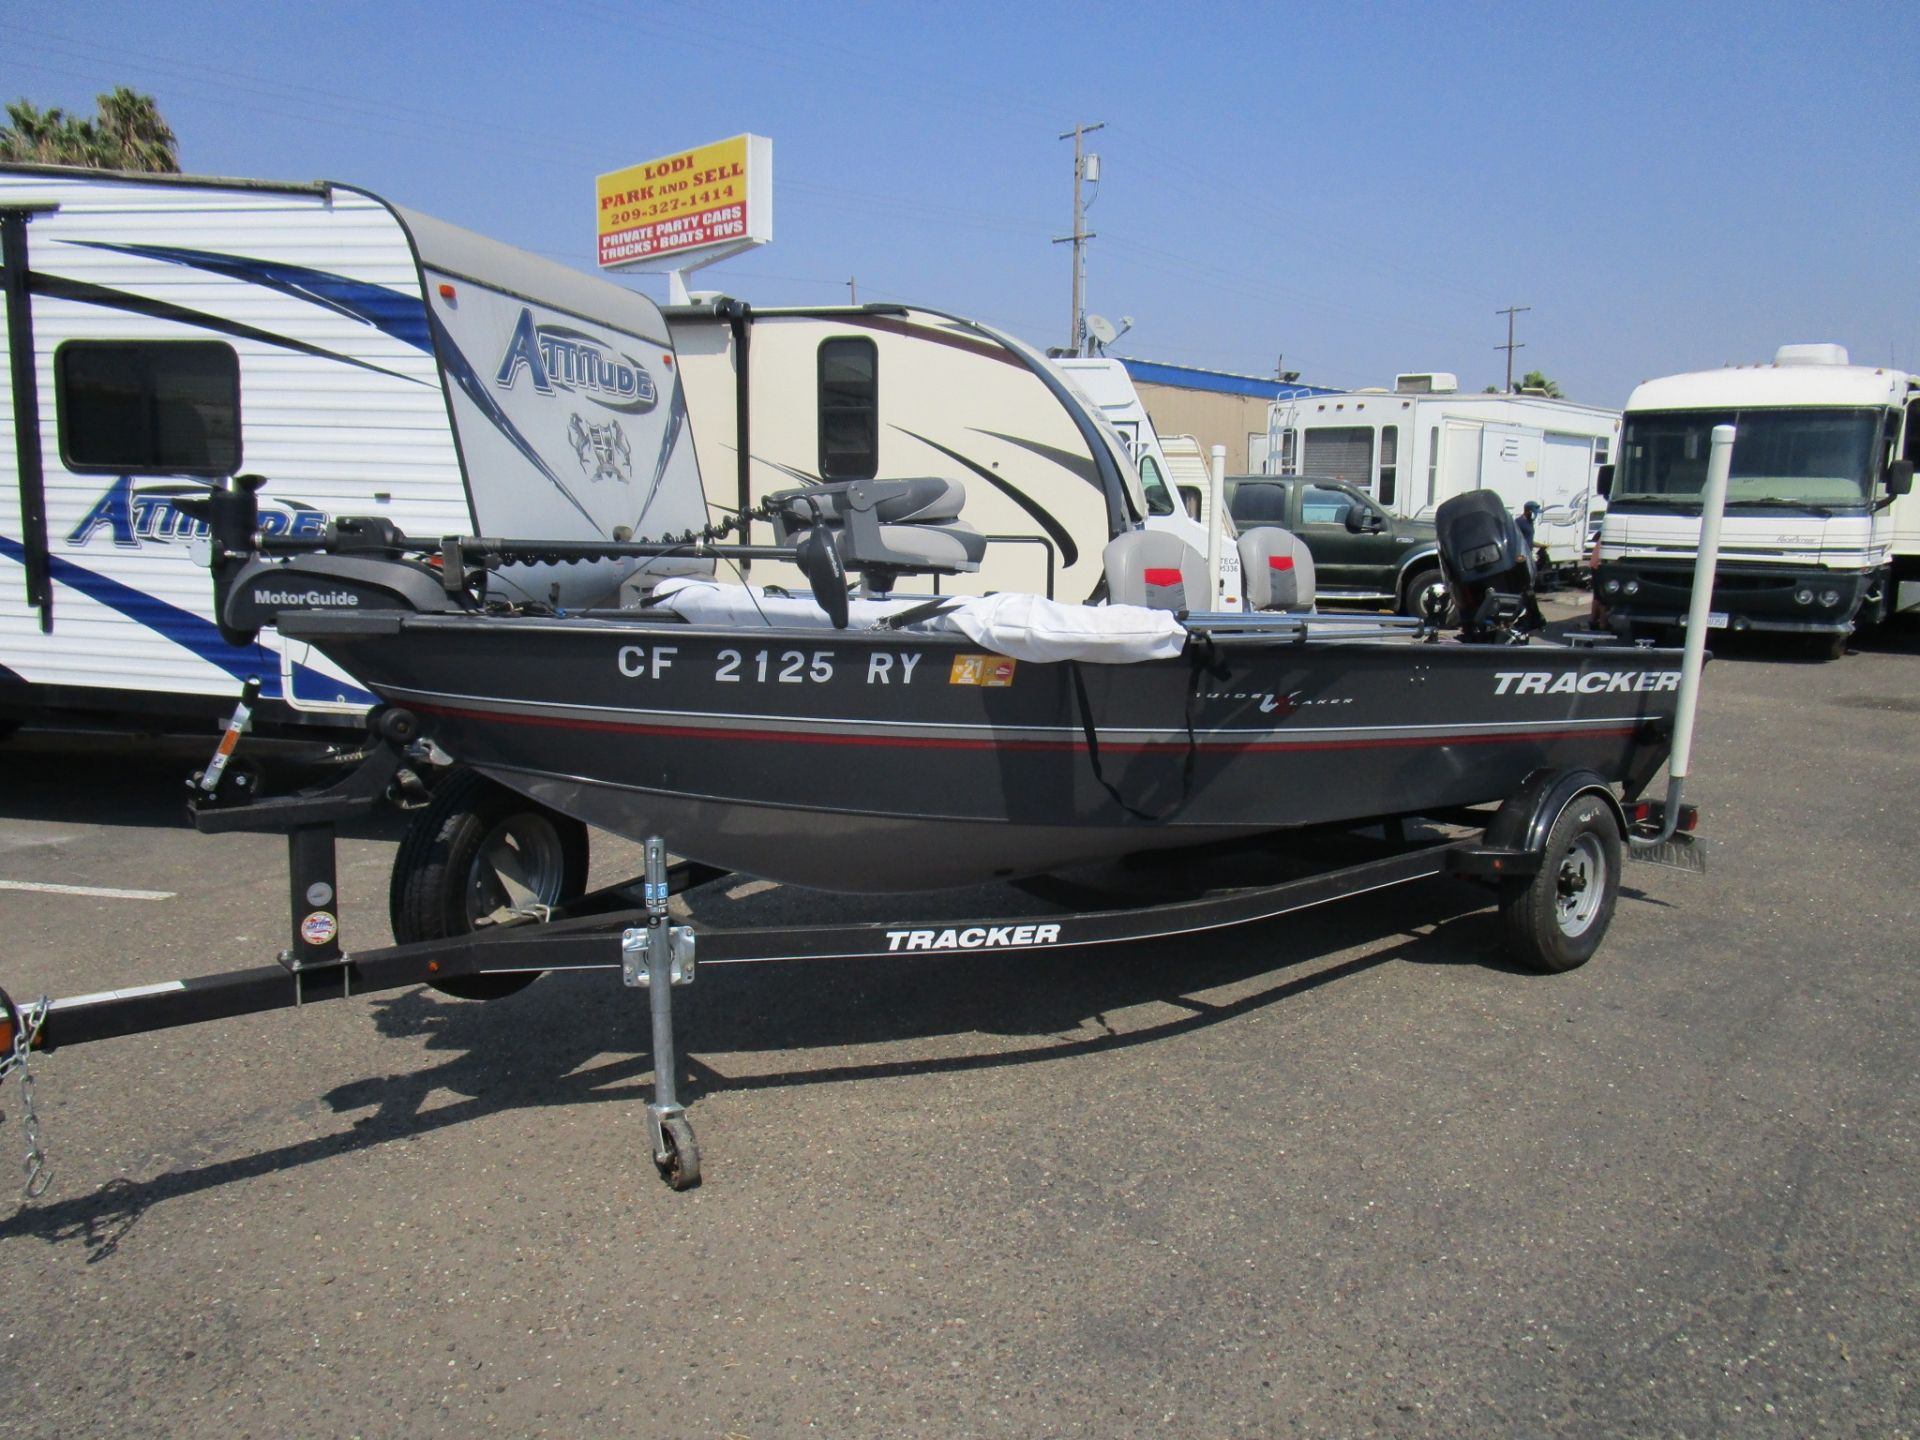 Boat for sale: 2017 Tracker Guide V-16 Laker DLX Fishing Boat 16' in Lodi  Stockton CA | Fishing boats, Fishing boats for sale, Boat covers